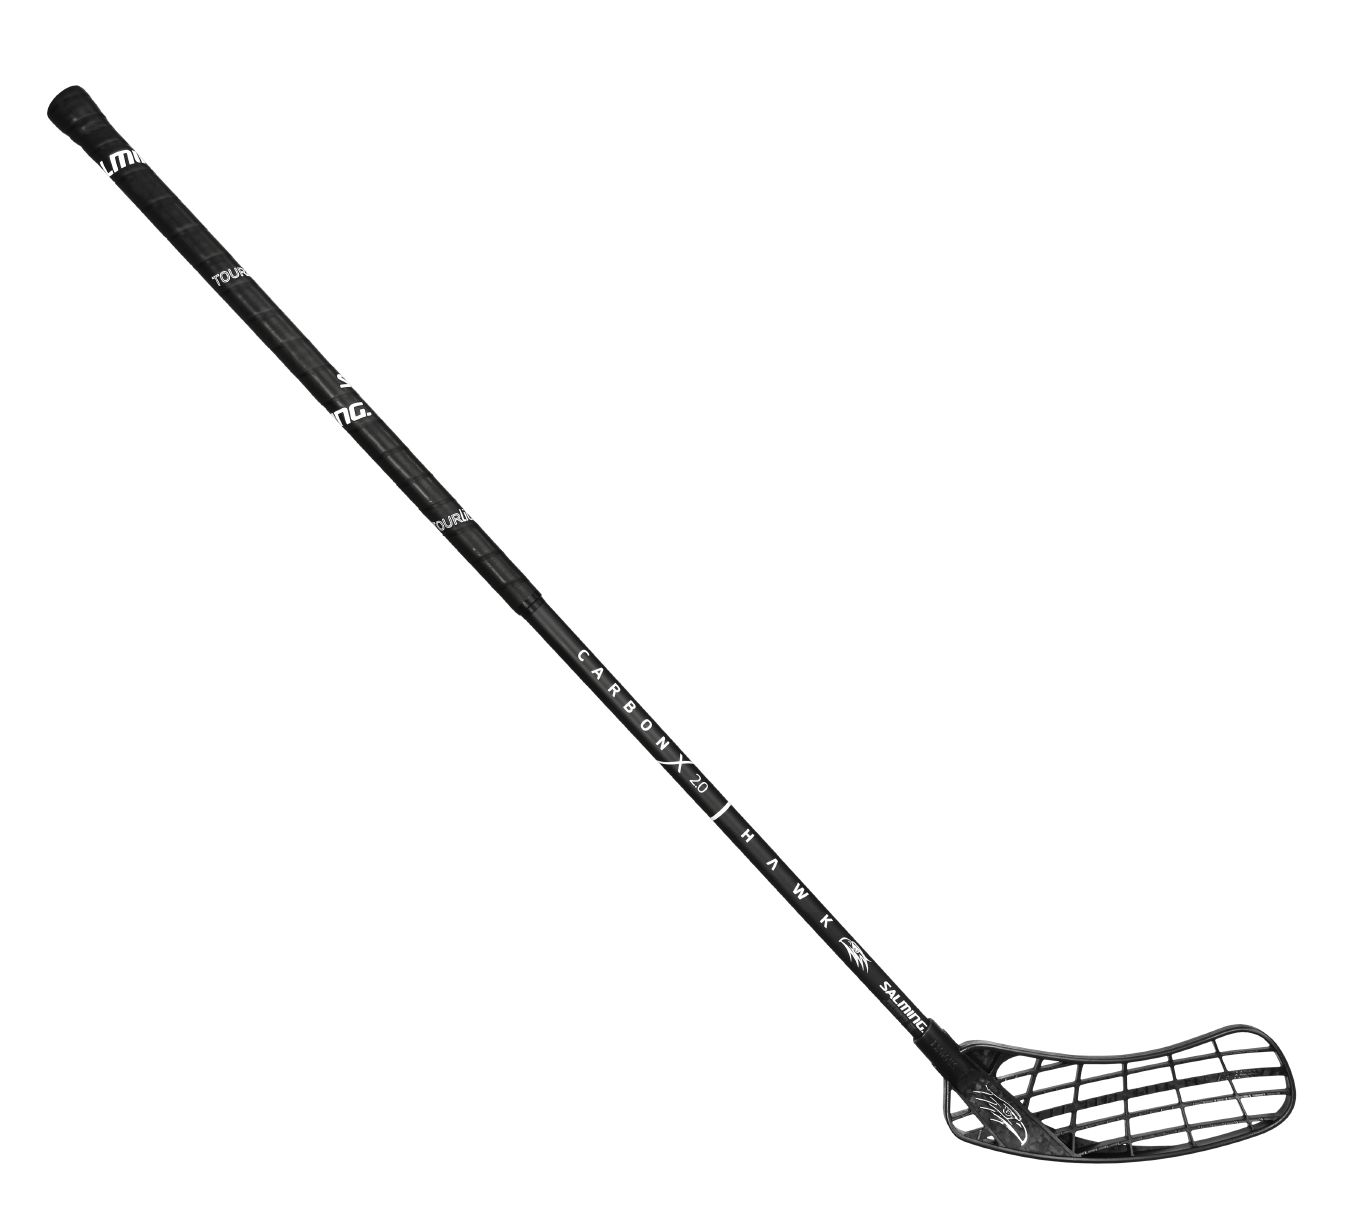 Salming Hawk CarbonX 2.0 114 (103) cm, Levá